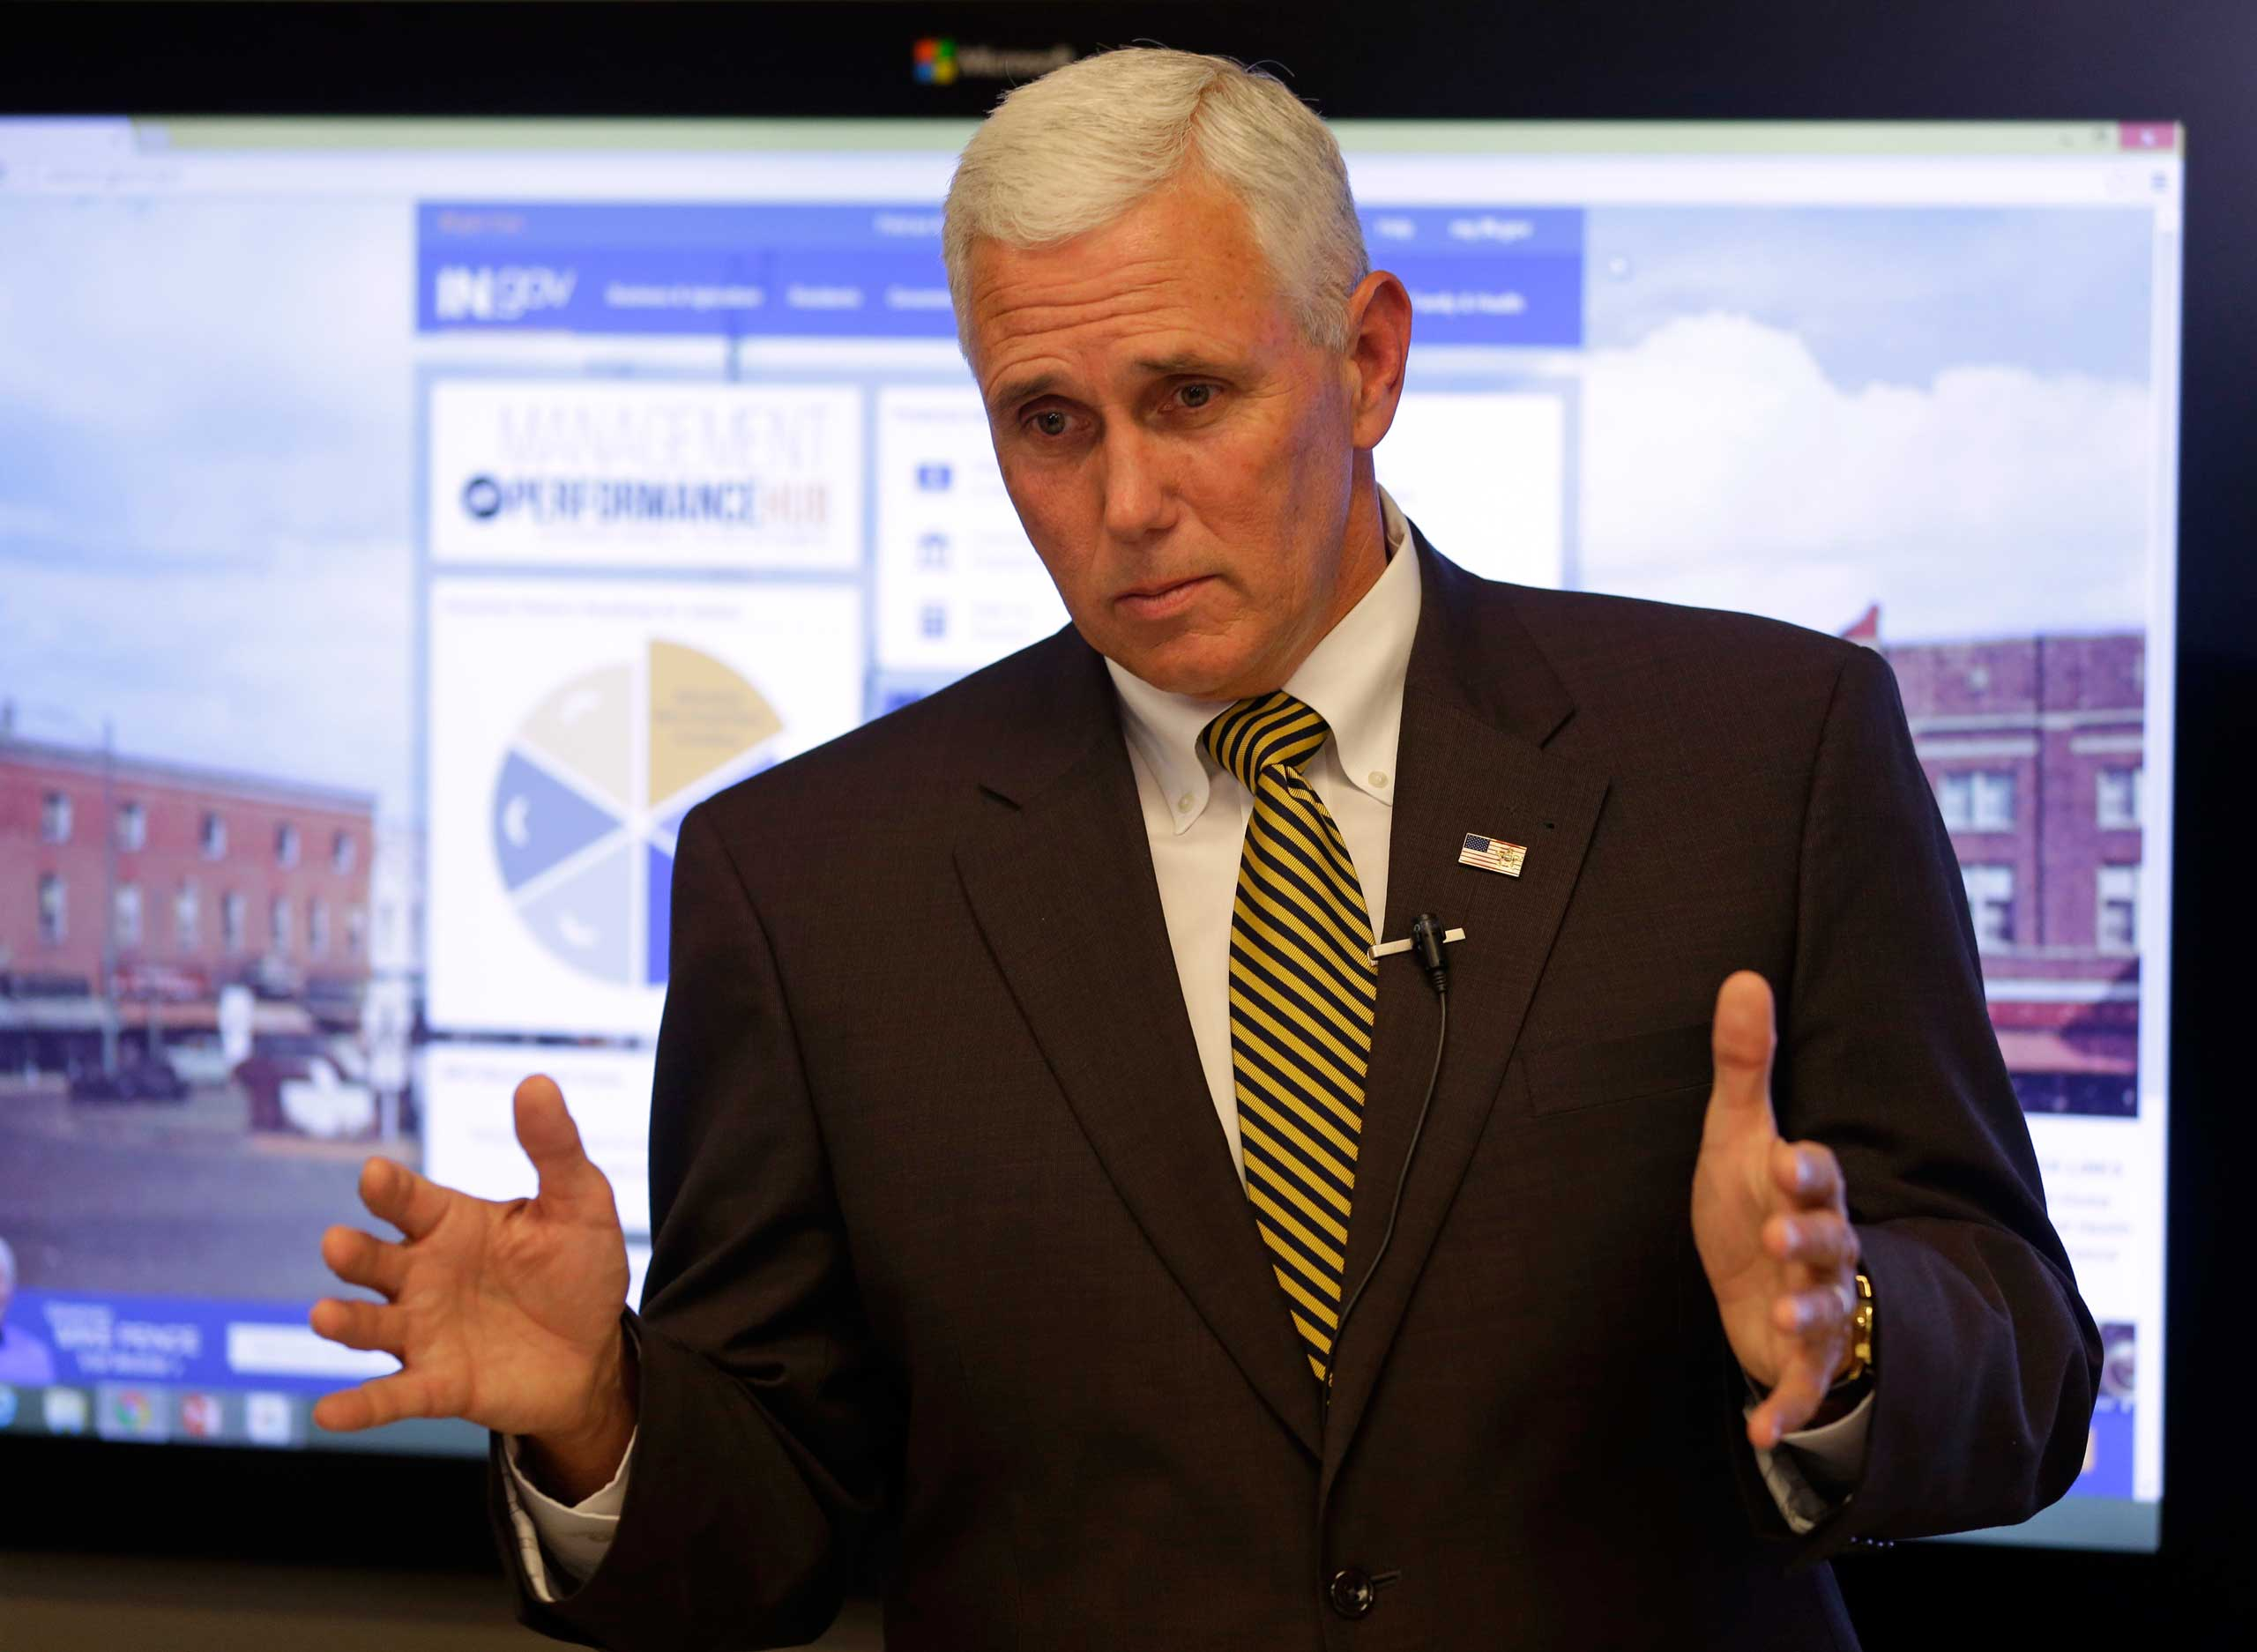 9, 2014, Indiana Gov. Mike Pence answers questions in Indianapolis on Sept. 9, 2014.